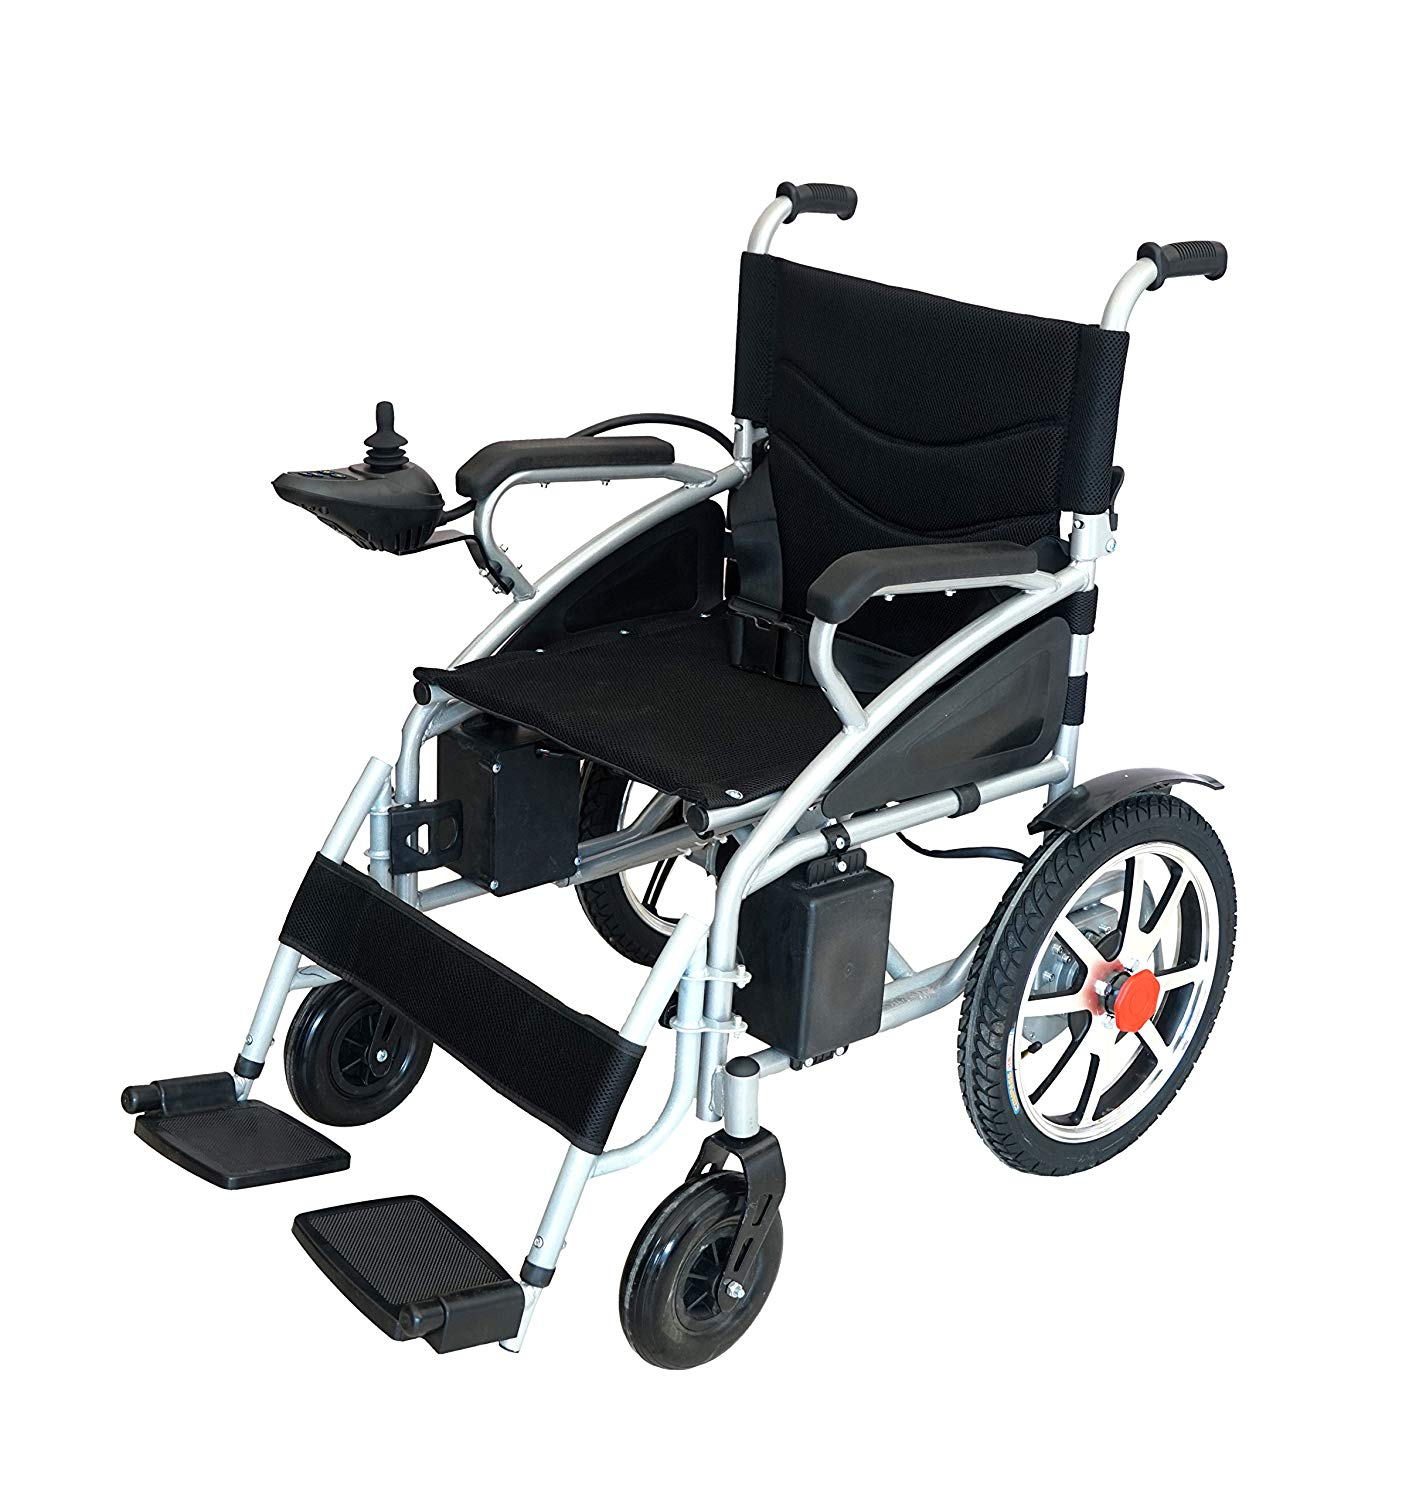 What is a power wheelchair?